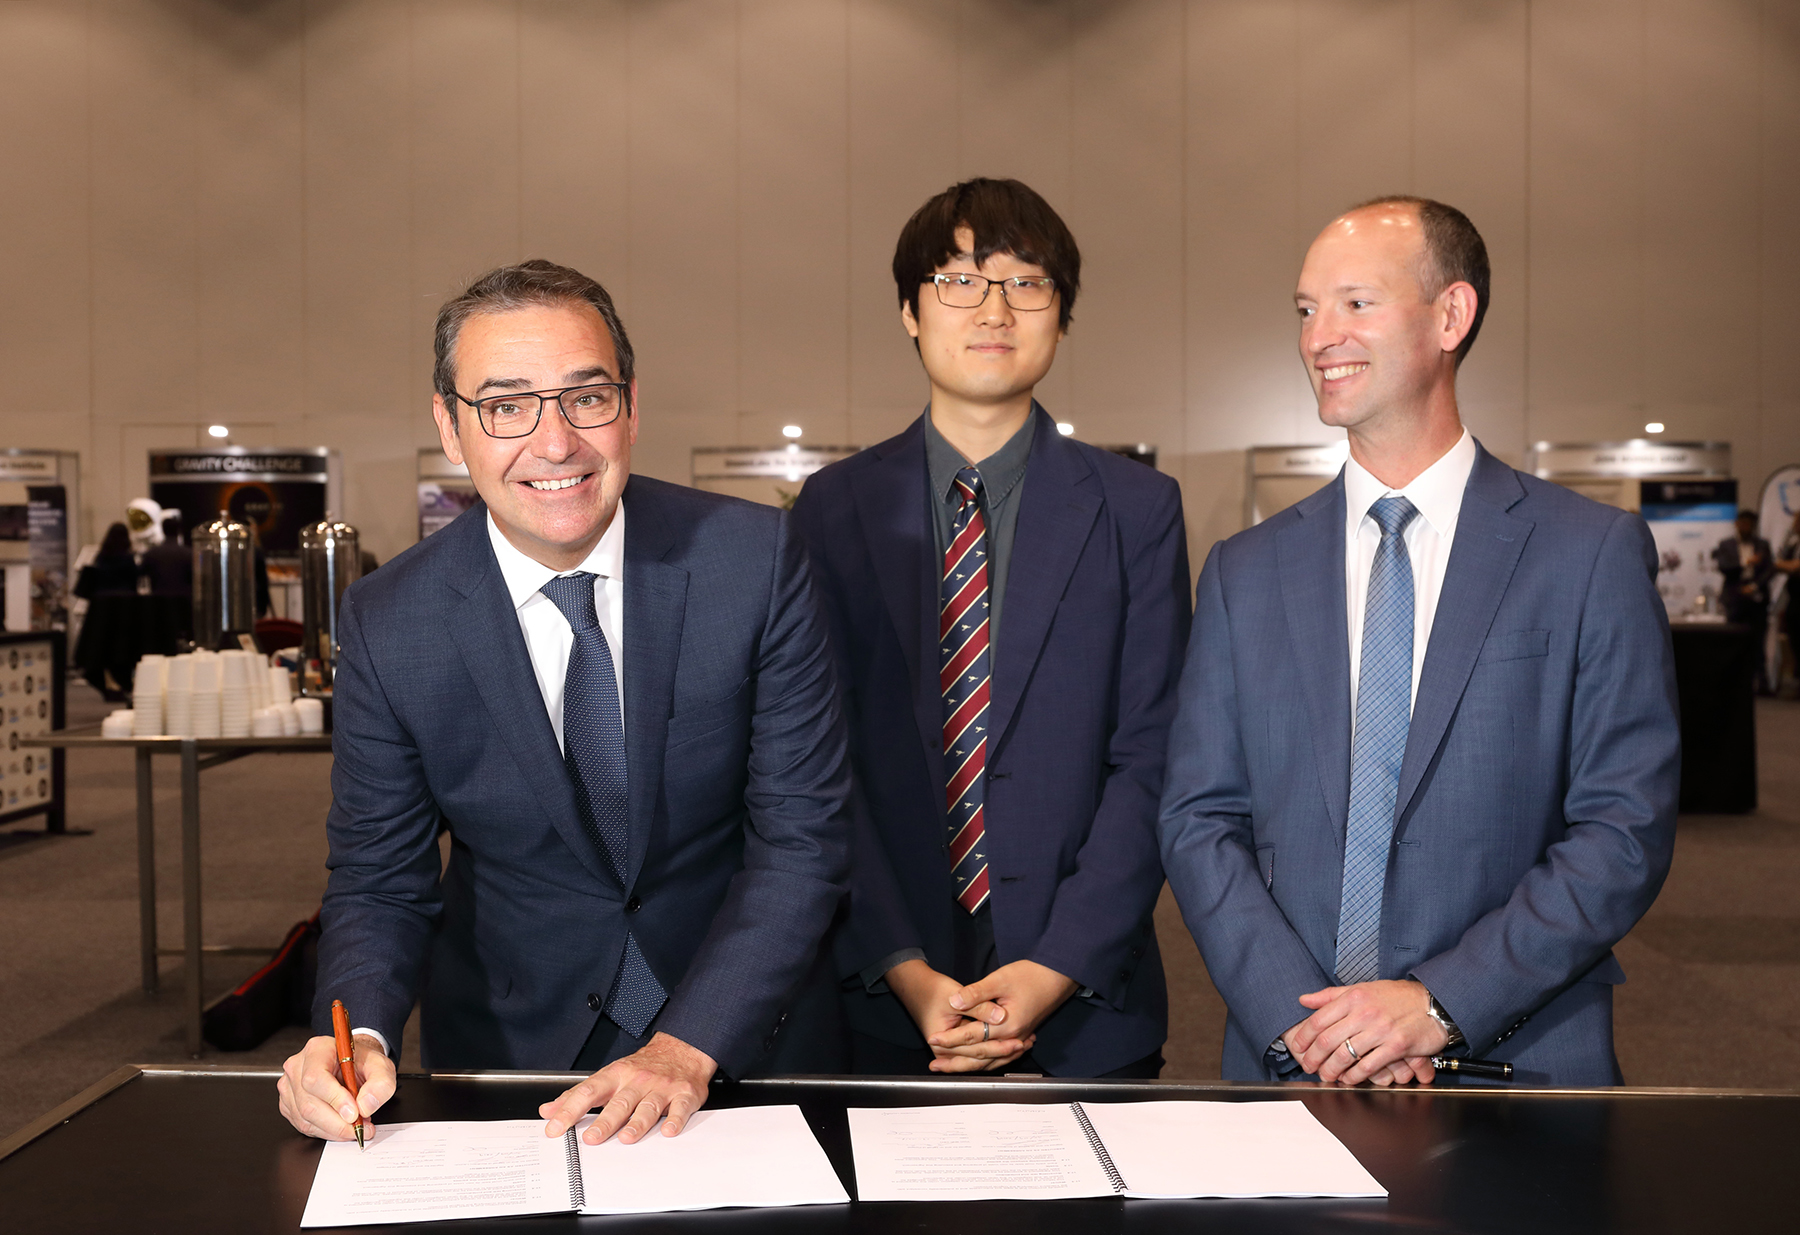 Premier Steven Marshall (left) Mr Yoon Shin (middle) and Mr Lloyd Damp (right) during the signing ceremony